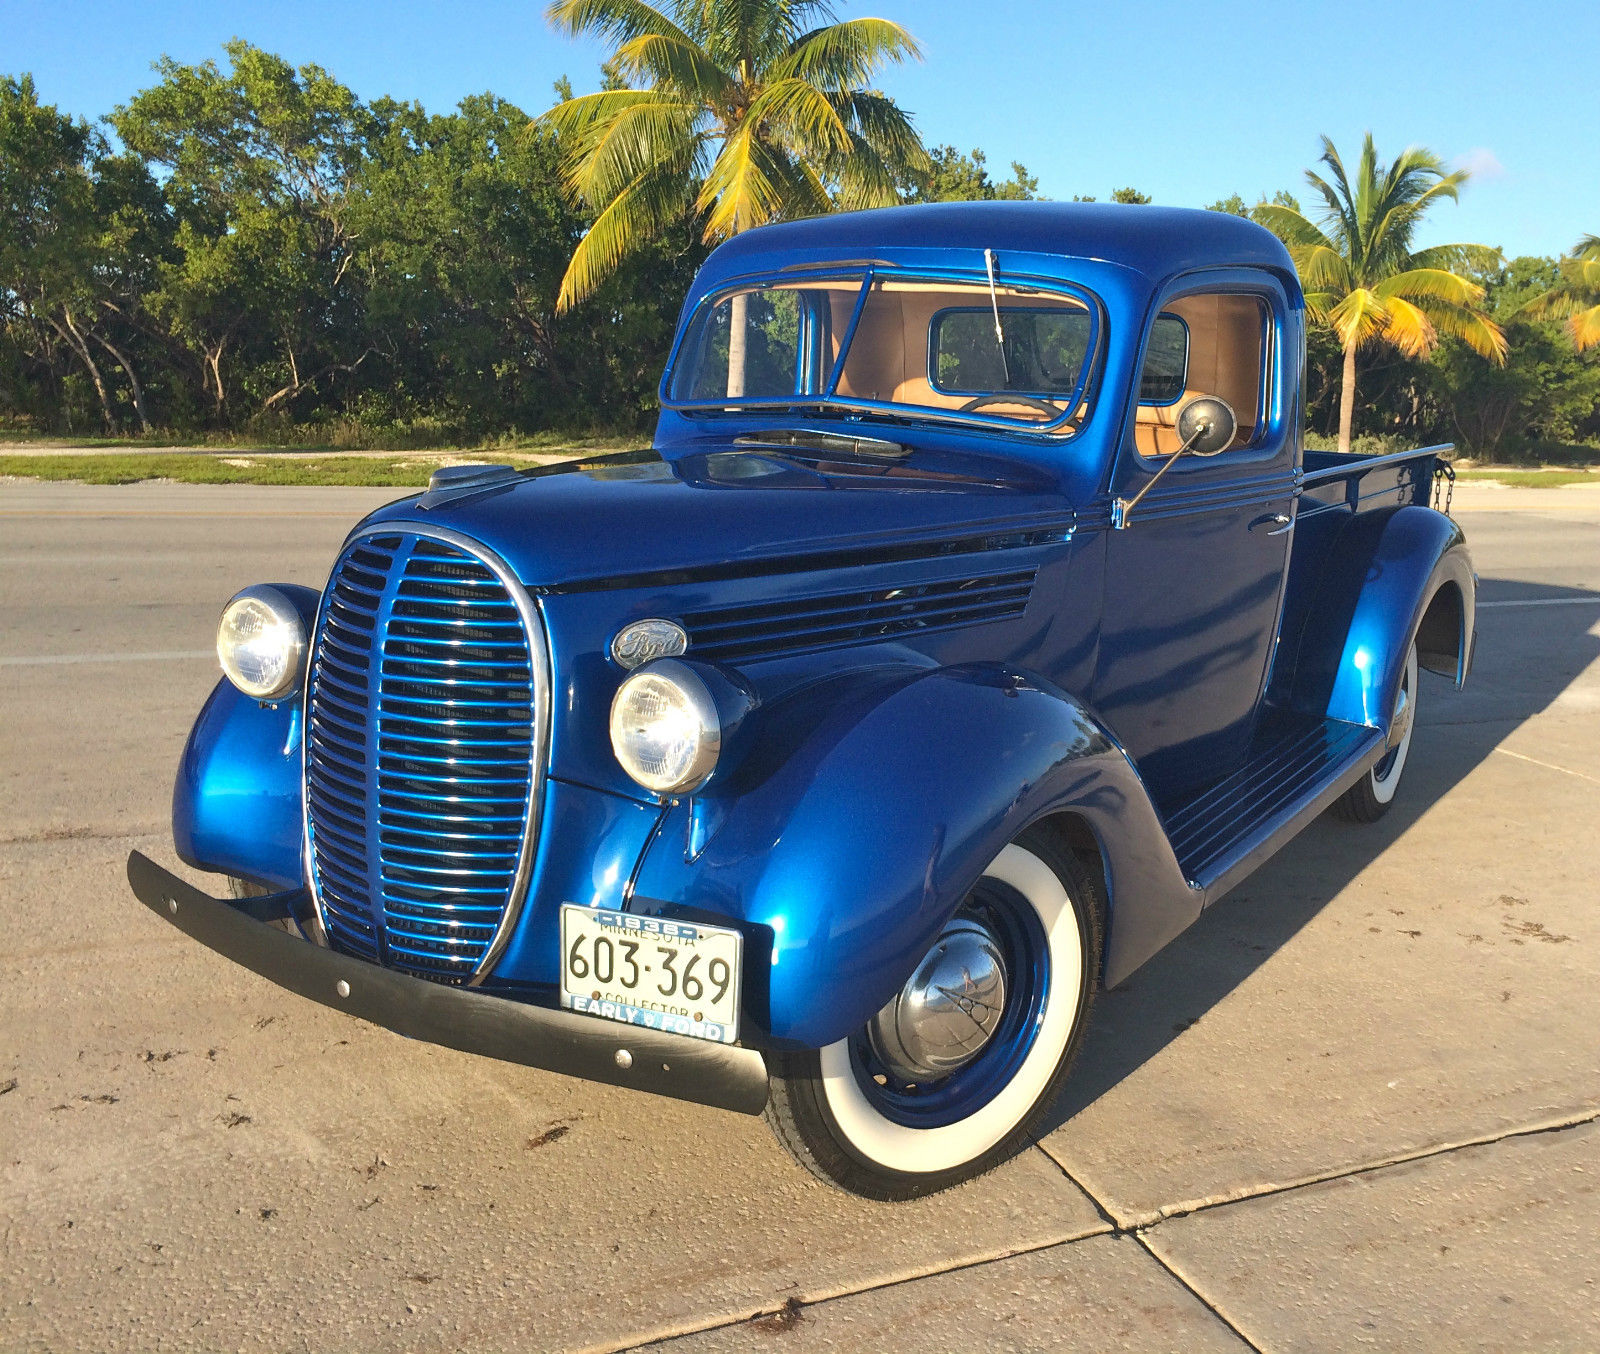 1938 Ford pickup model 85 - Ford Electric Blue ,Original Engine with low  mileage